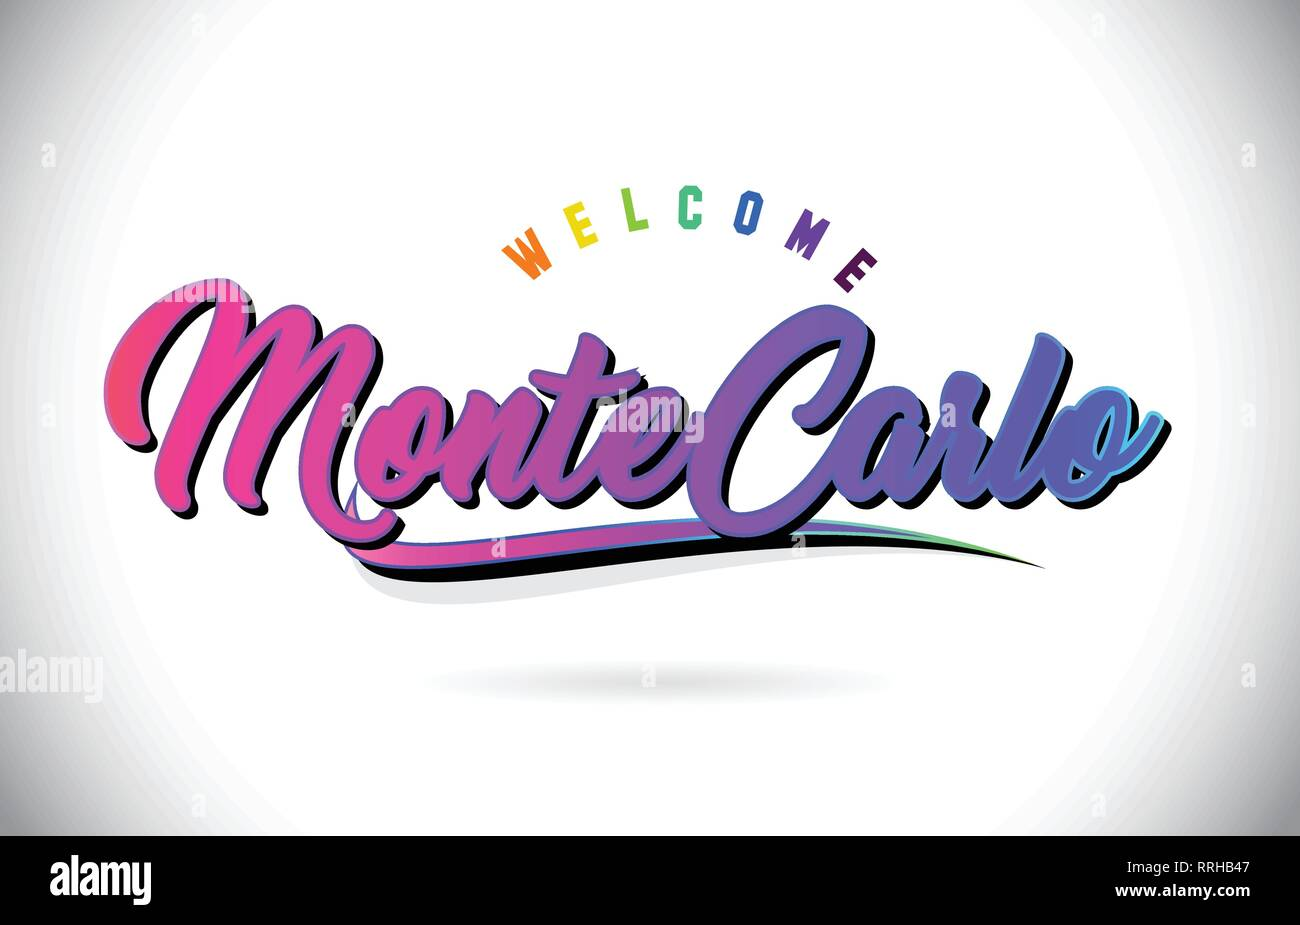 MonteCarlo Welcome To Word Text with Creative Purple Pink Handwritten Font and Swoosh Shape Design Vector Illustration. - Stock Vector